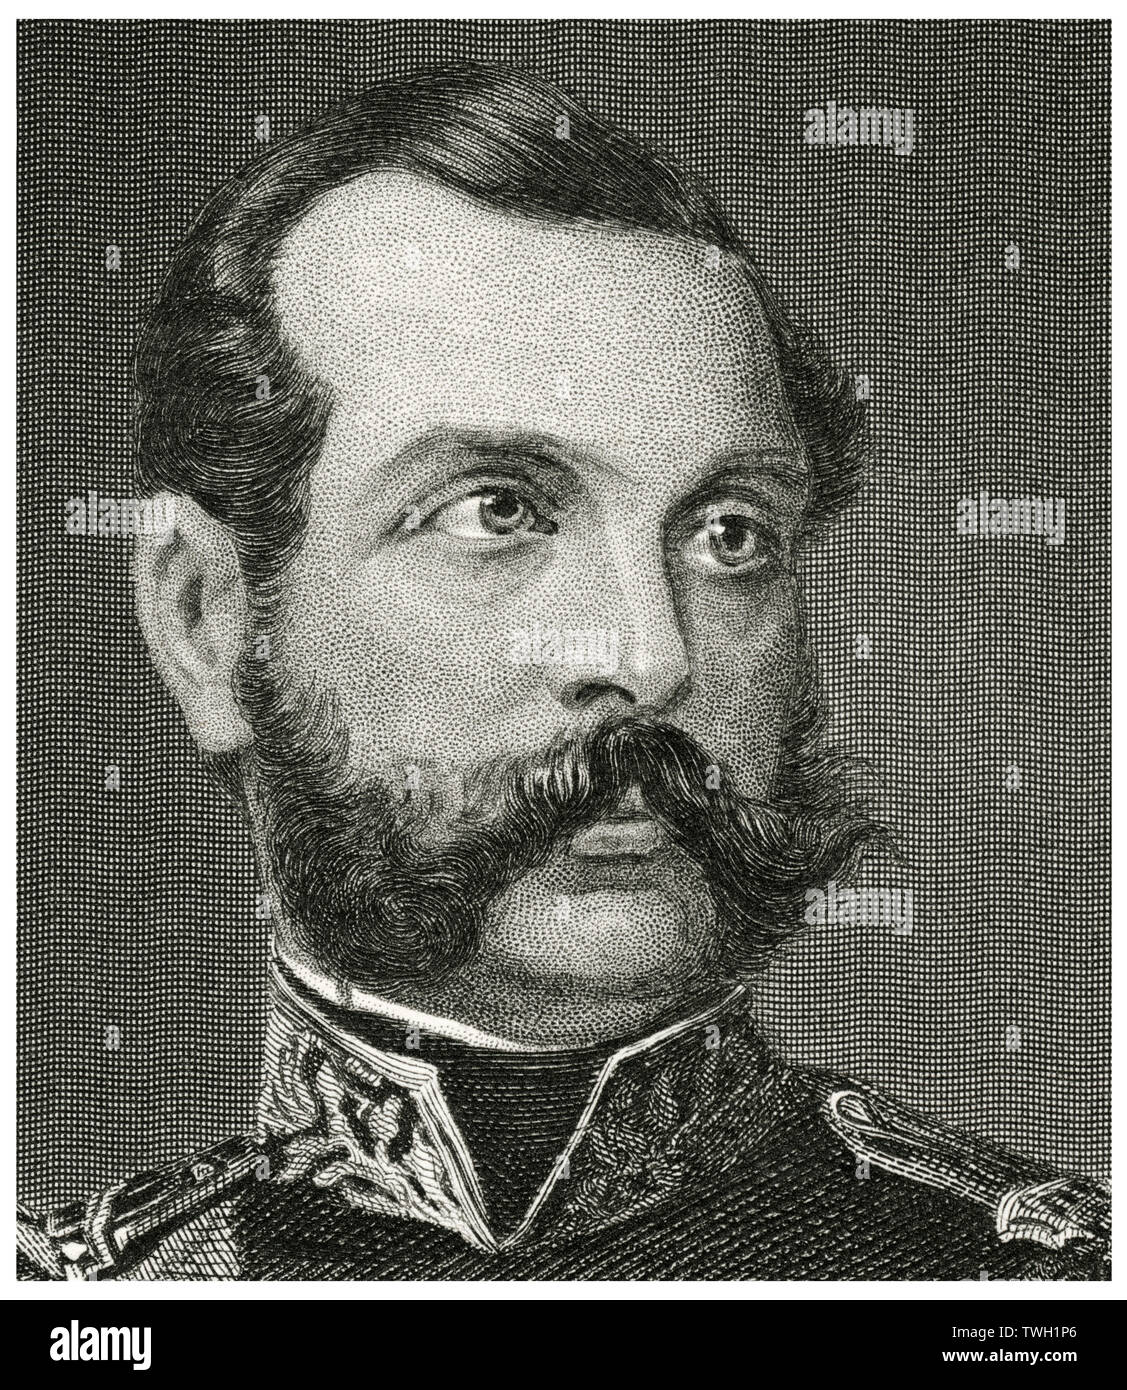 Alexander II (1818-81), Emperor of Russia 1855-81, Head and Shoulders Portrait, Steel Engraving, Portrait Gallery of Eminent Men and Women of Europe and America by Evert A. Duyckinck, Published by Henry J. Johnson, Johnson, Wilson & Company, New York, 1873 - Stock Image